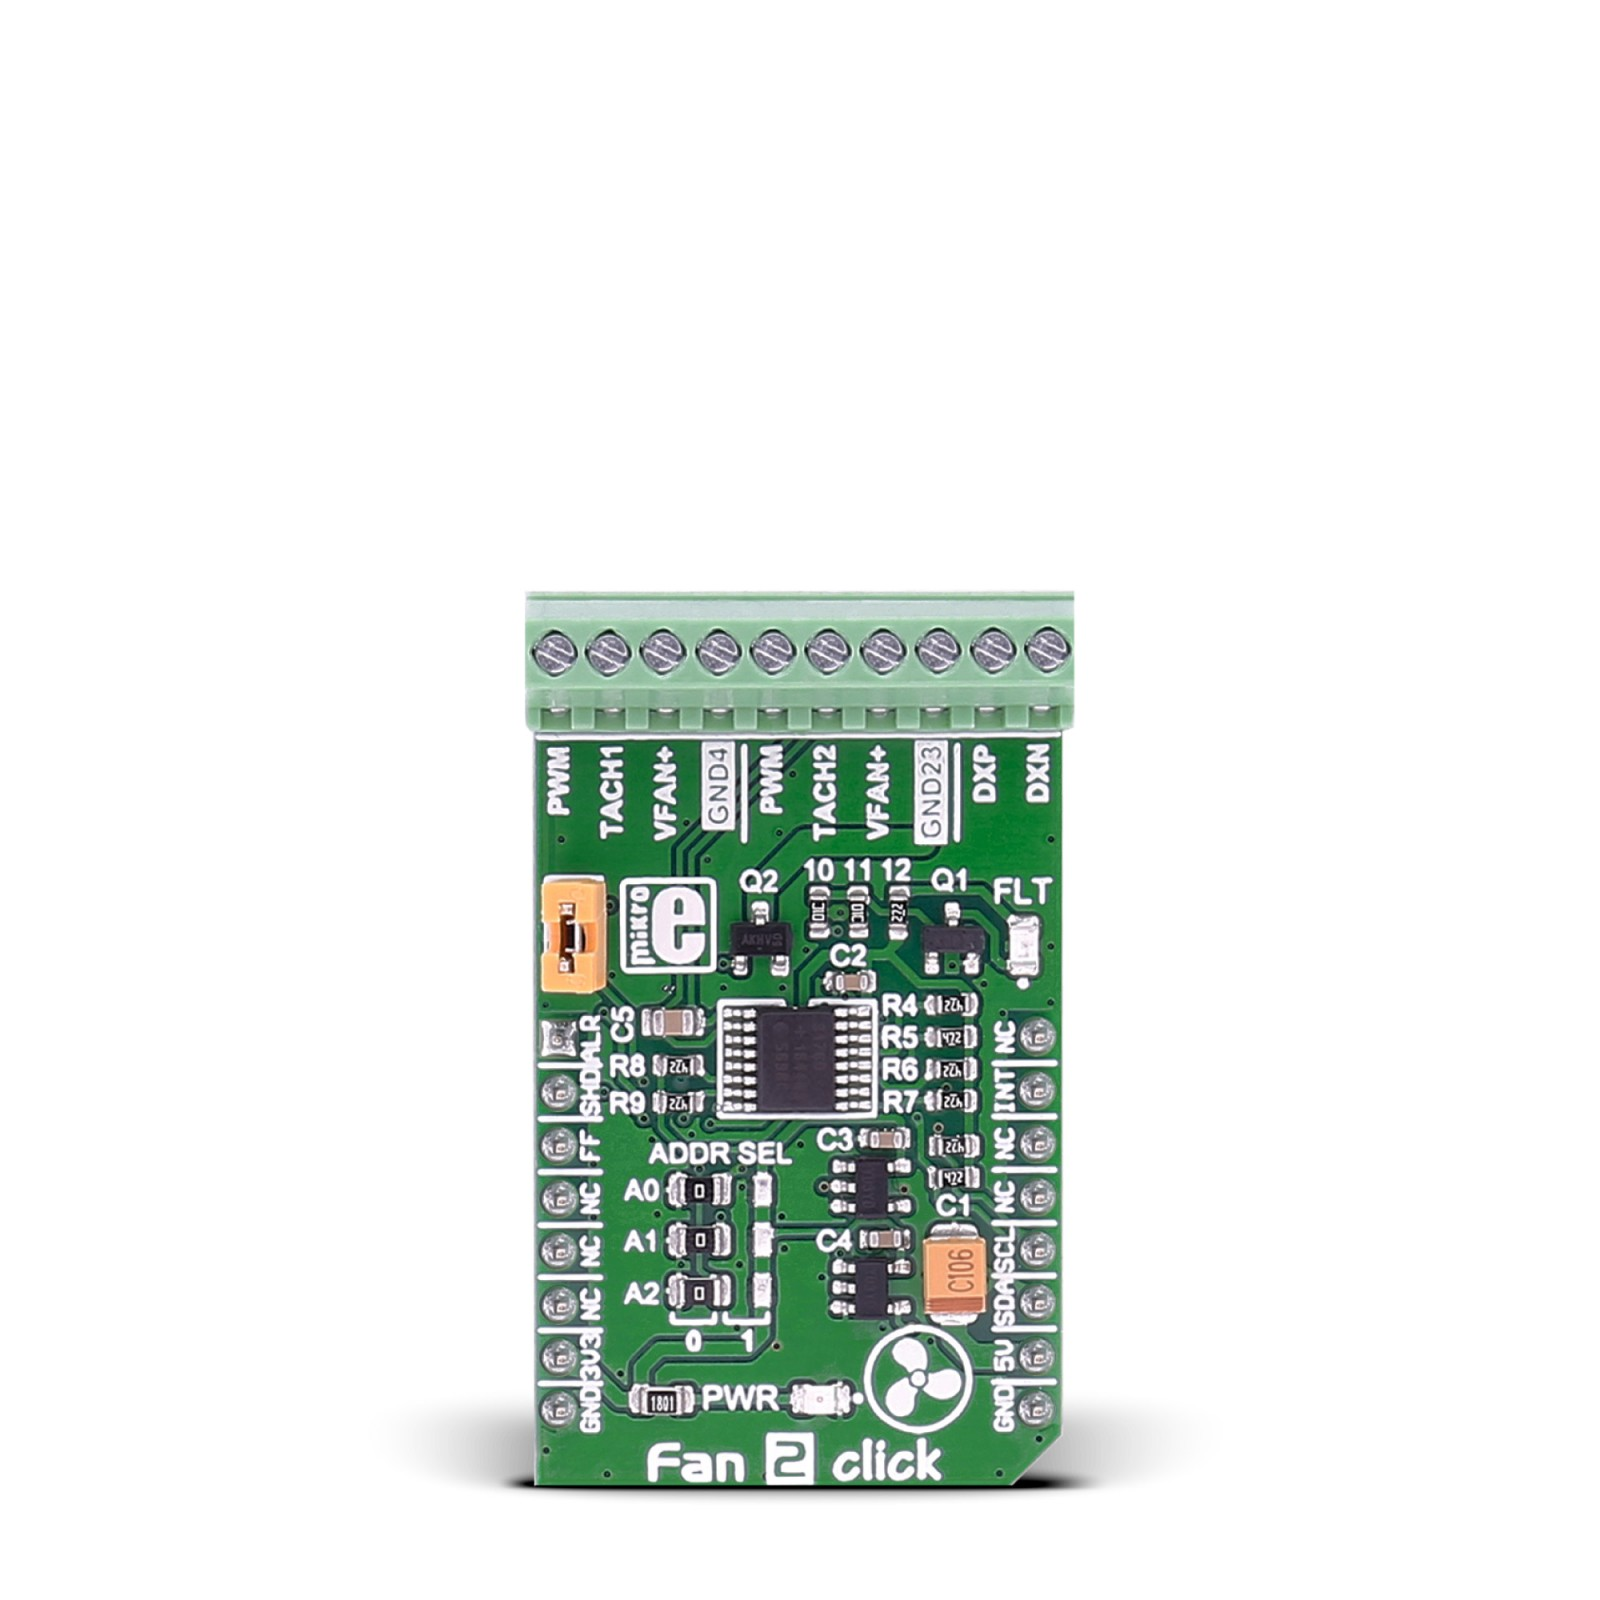 Fan 2 Click Board With Max31760 Precision Speed Controller 3 Wire Electric Diagram Pc Mgctlbxnmzp Mgctlbxv5112 Mgctlbxlc Mgctlbxpprestashop